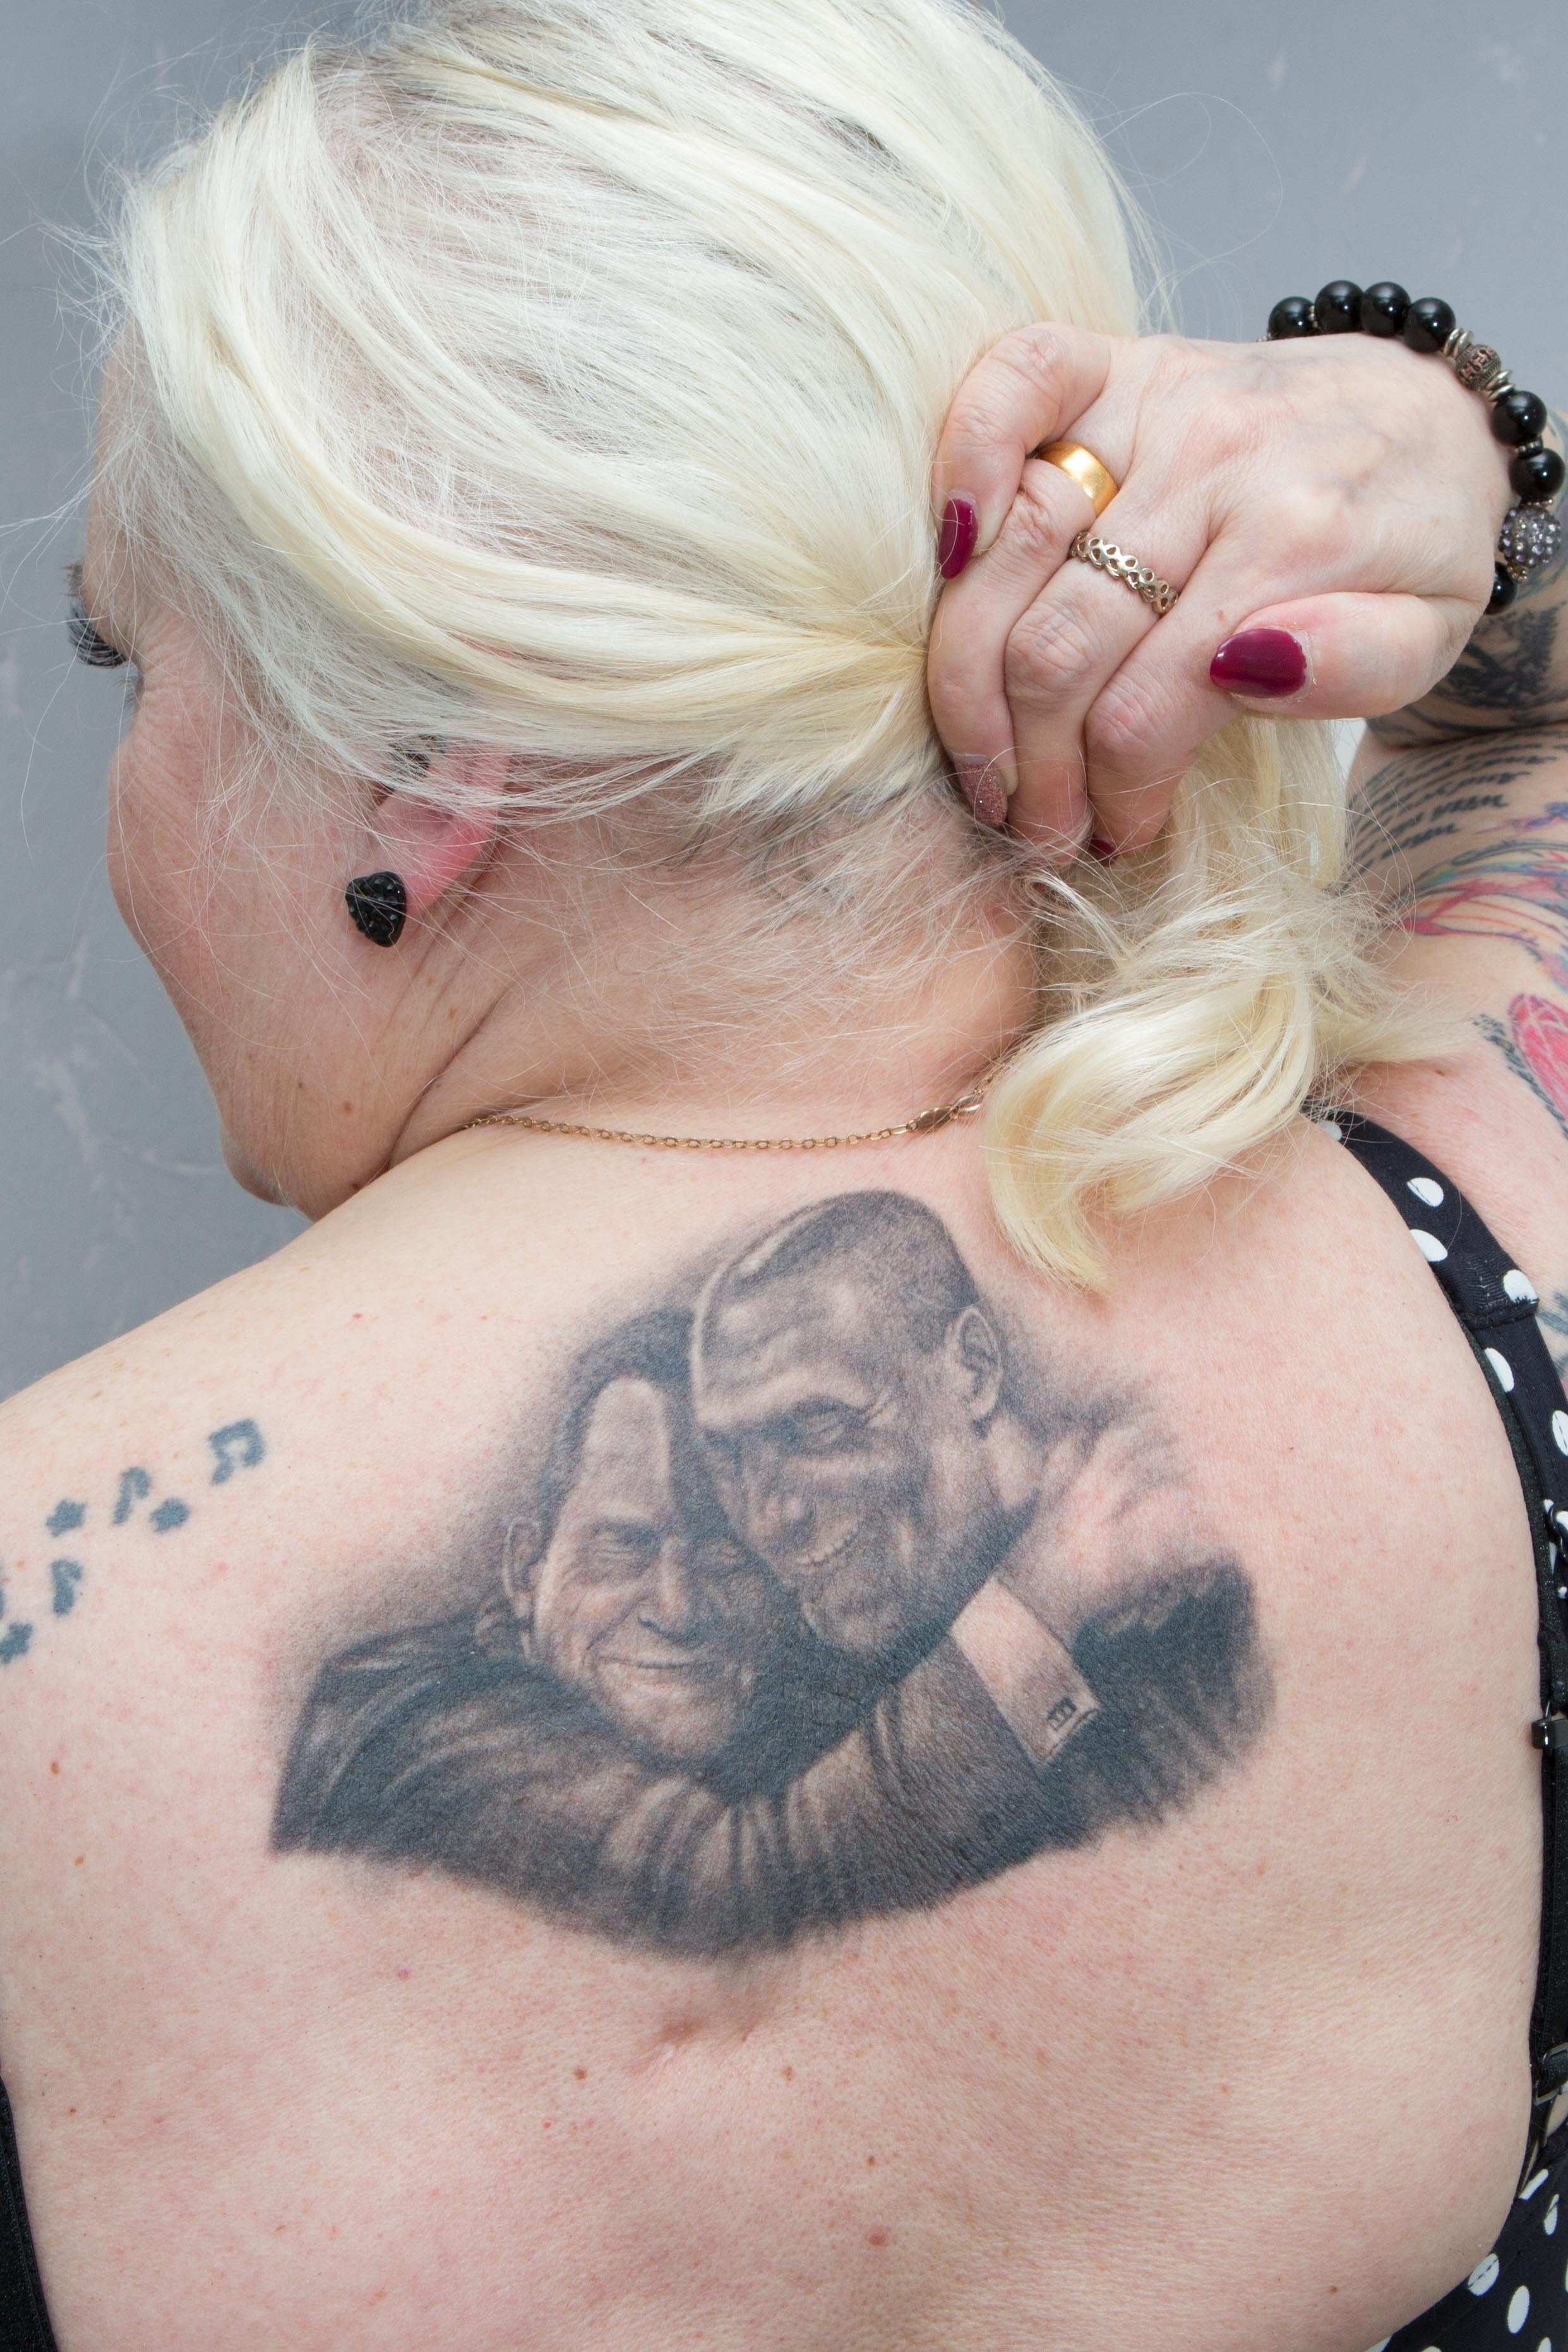 The gran has added to her collection of tats with one of Jeremy Kyle and Steve. Credit: SWNS